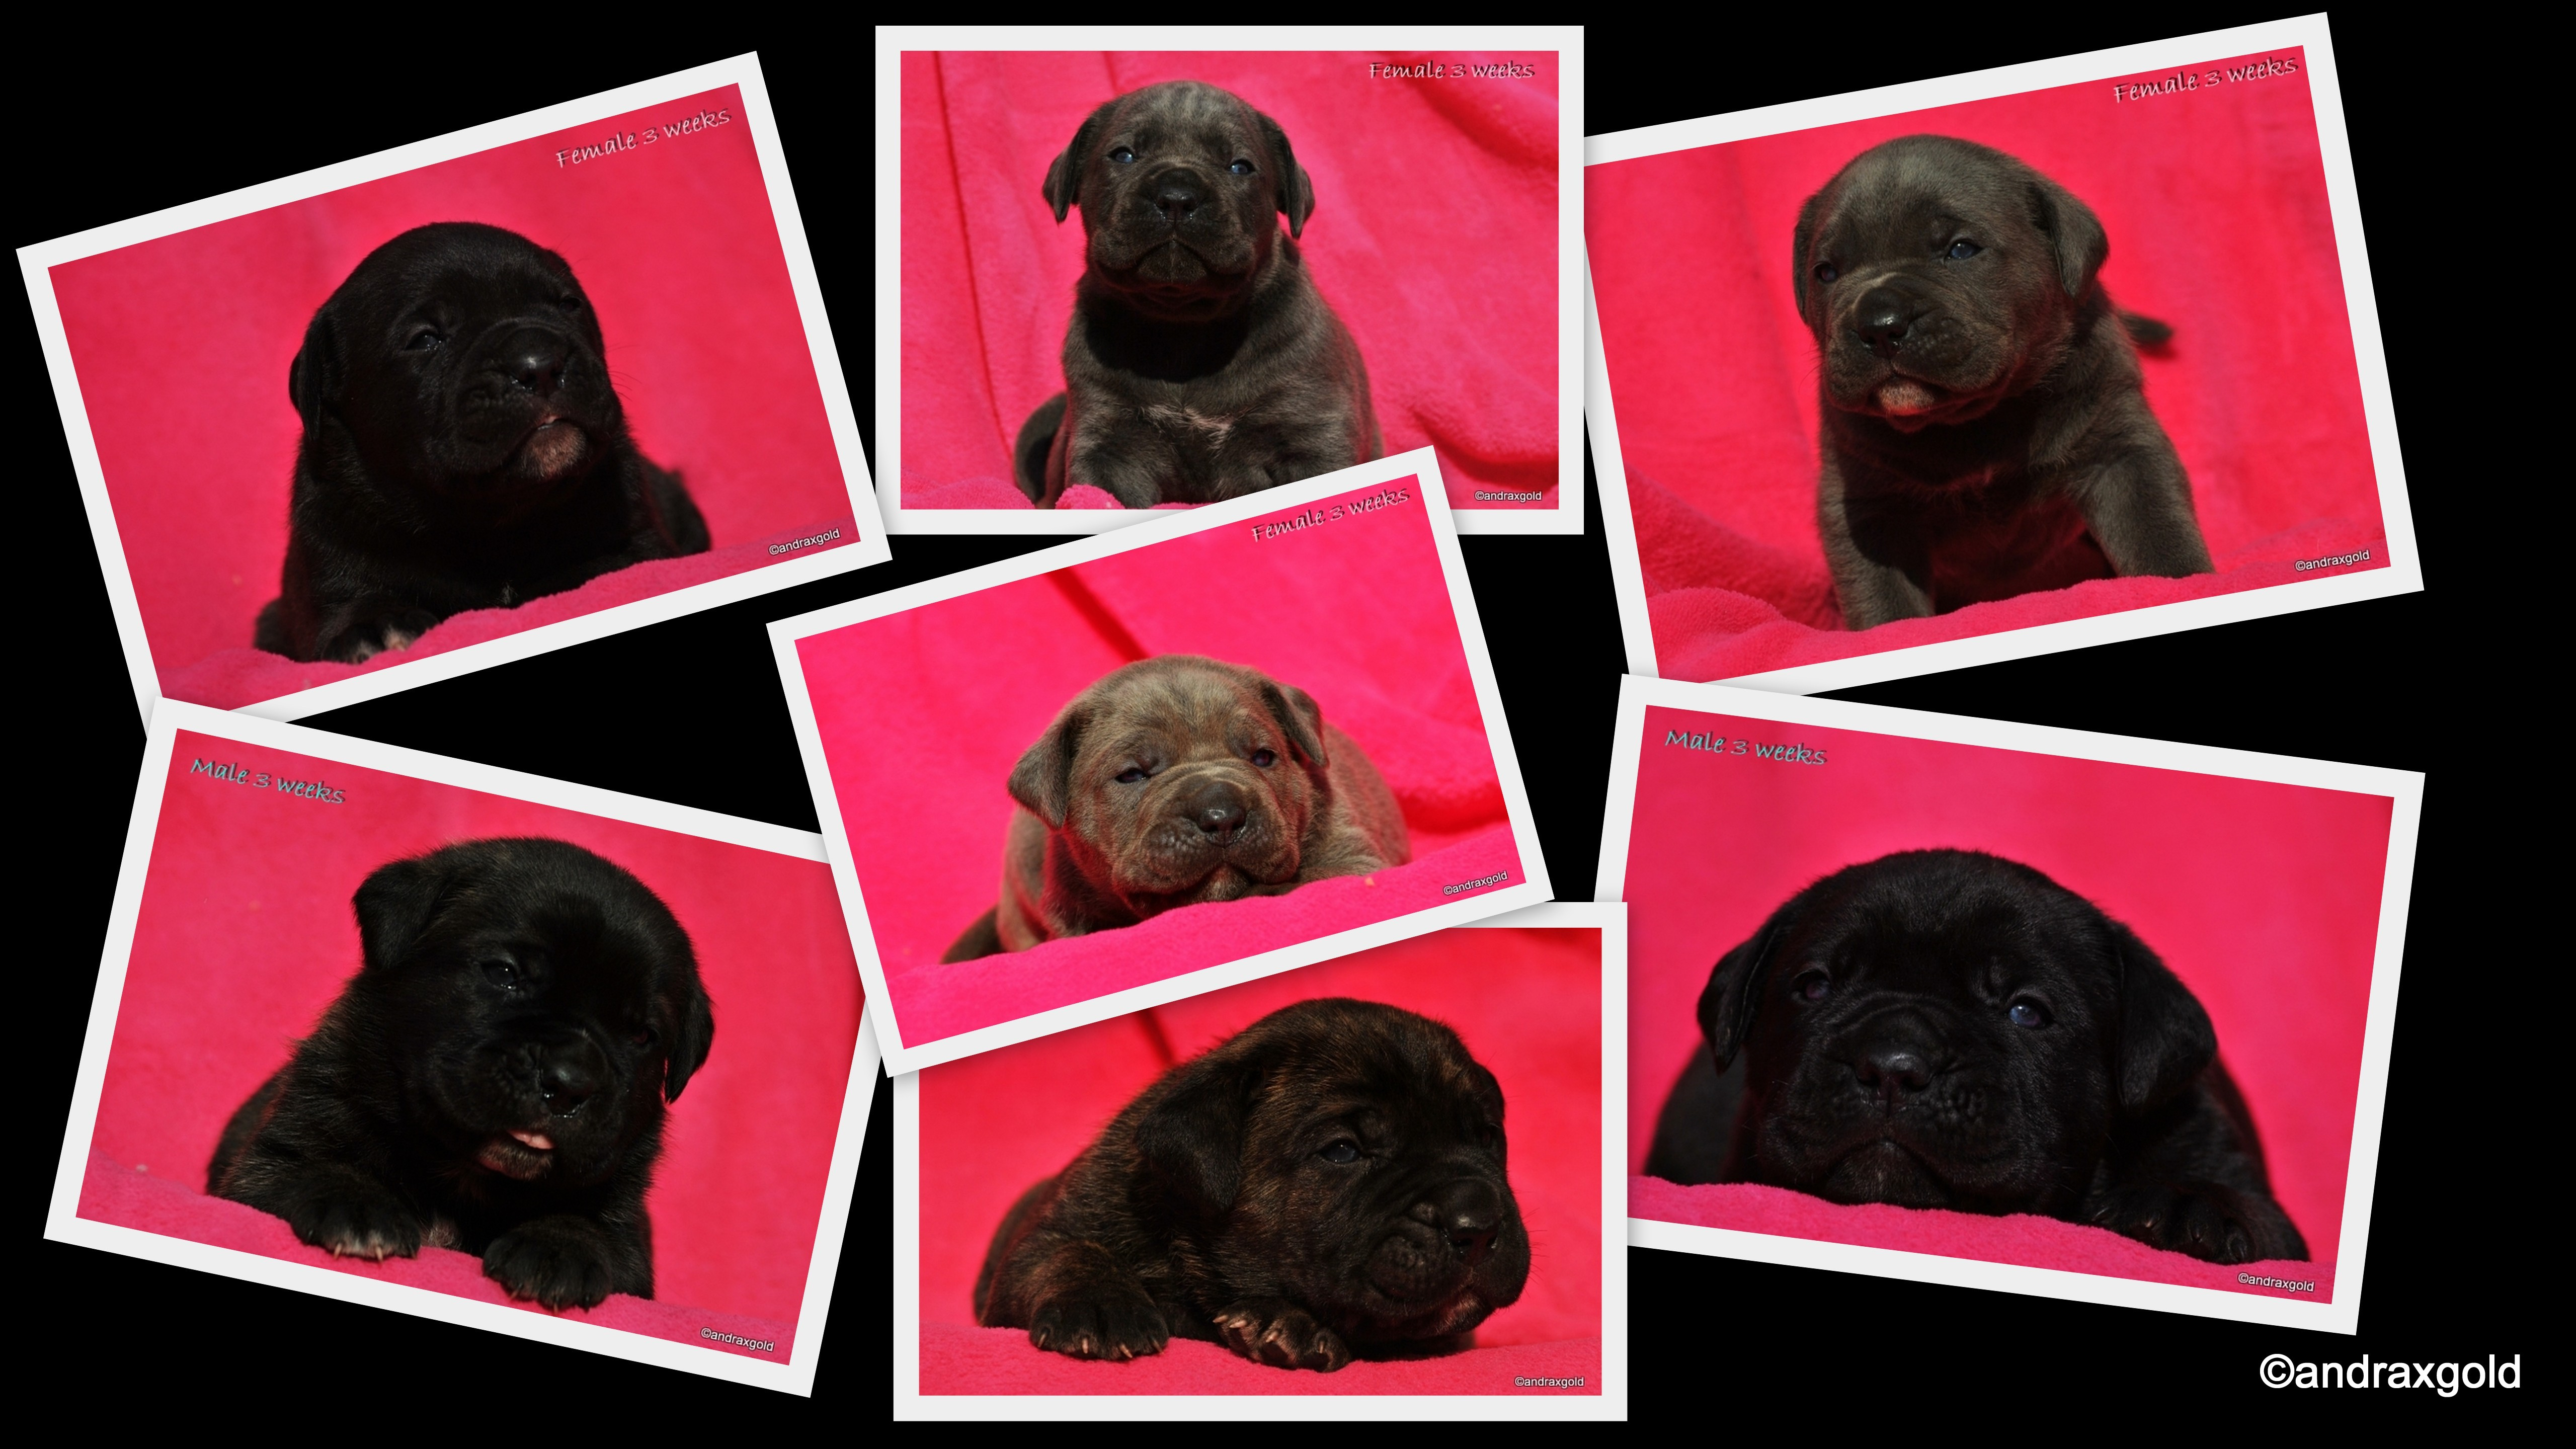 puppies-litter-d-cane-corso-fb3.jpg